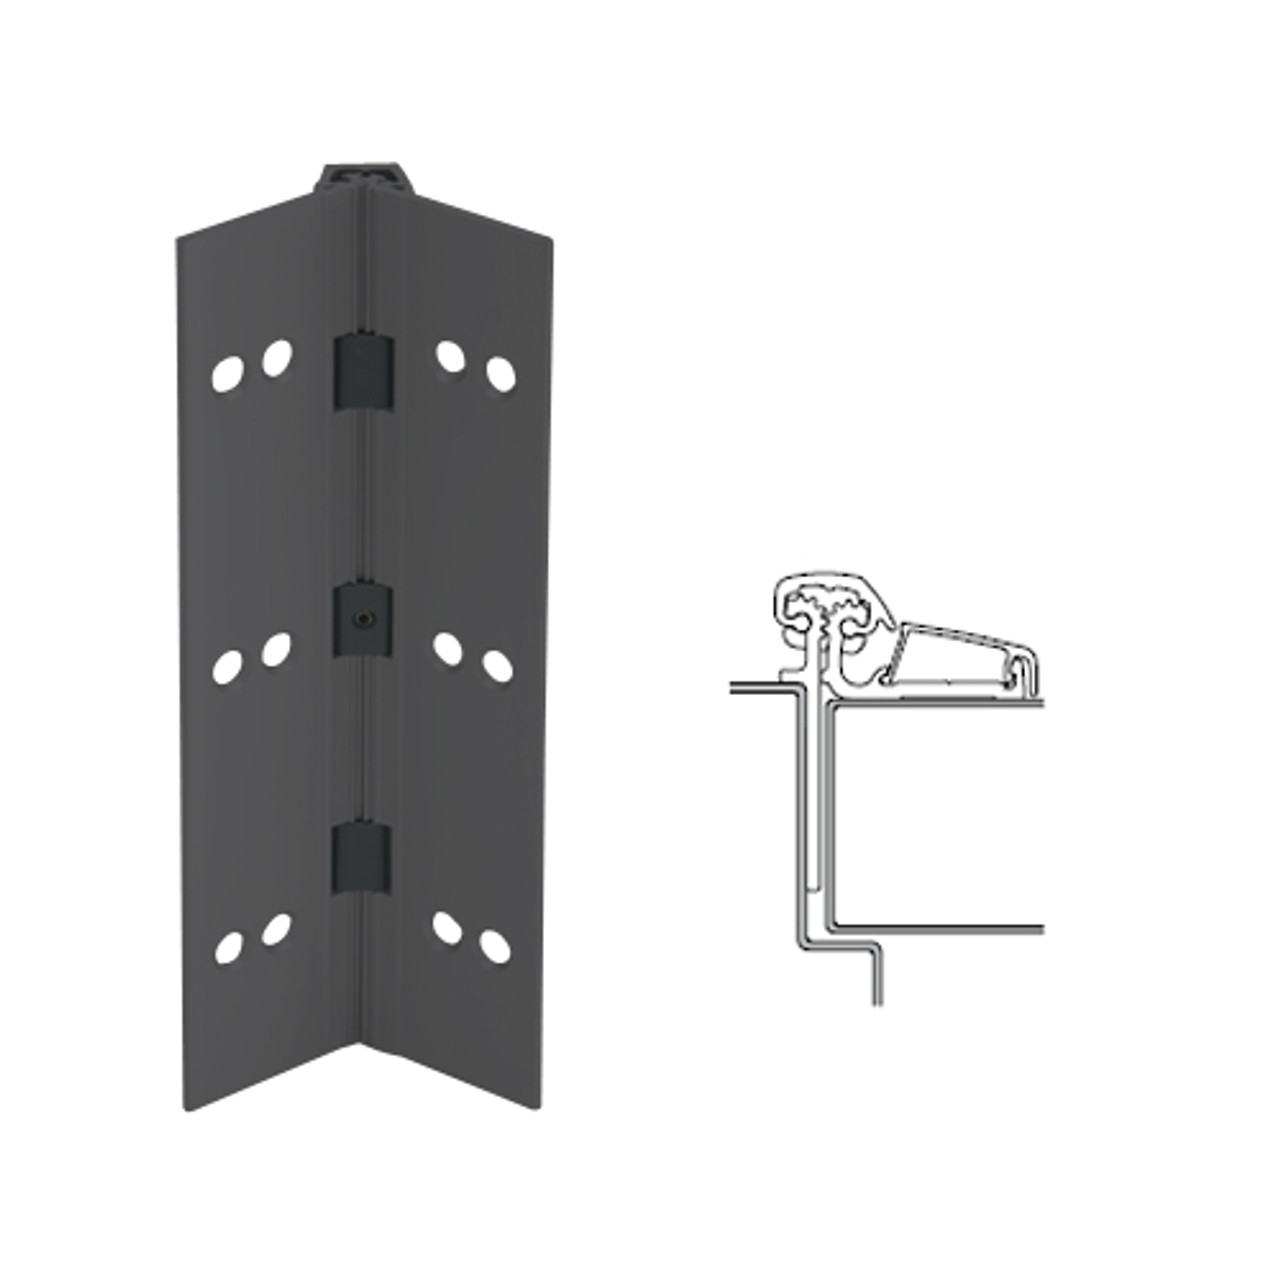 053XY-315AN-83-SECHM IVES Adjustable Half Surface Continuous Geared Hinges with Security Screws - Hex Pin Drive in Anodized Black